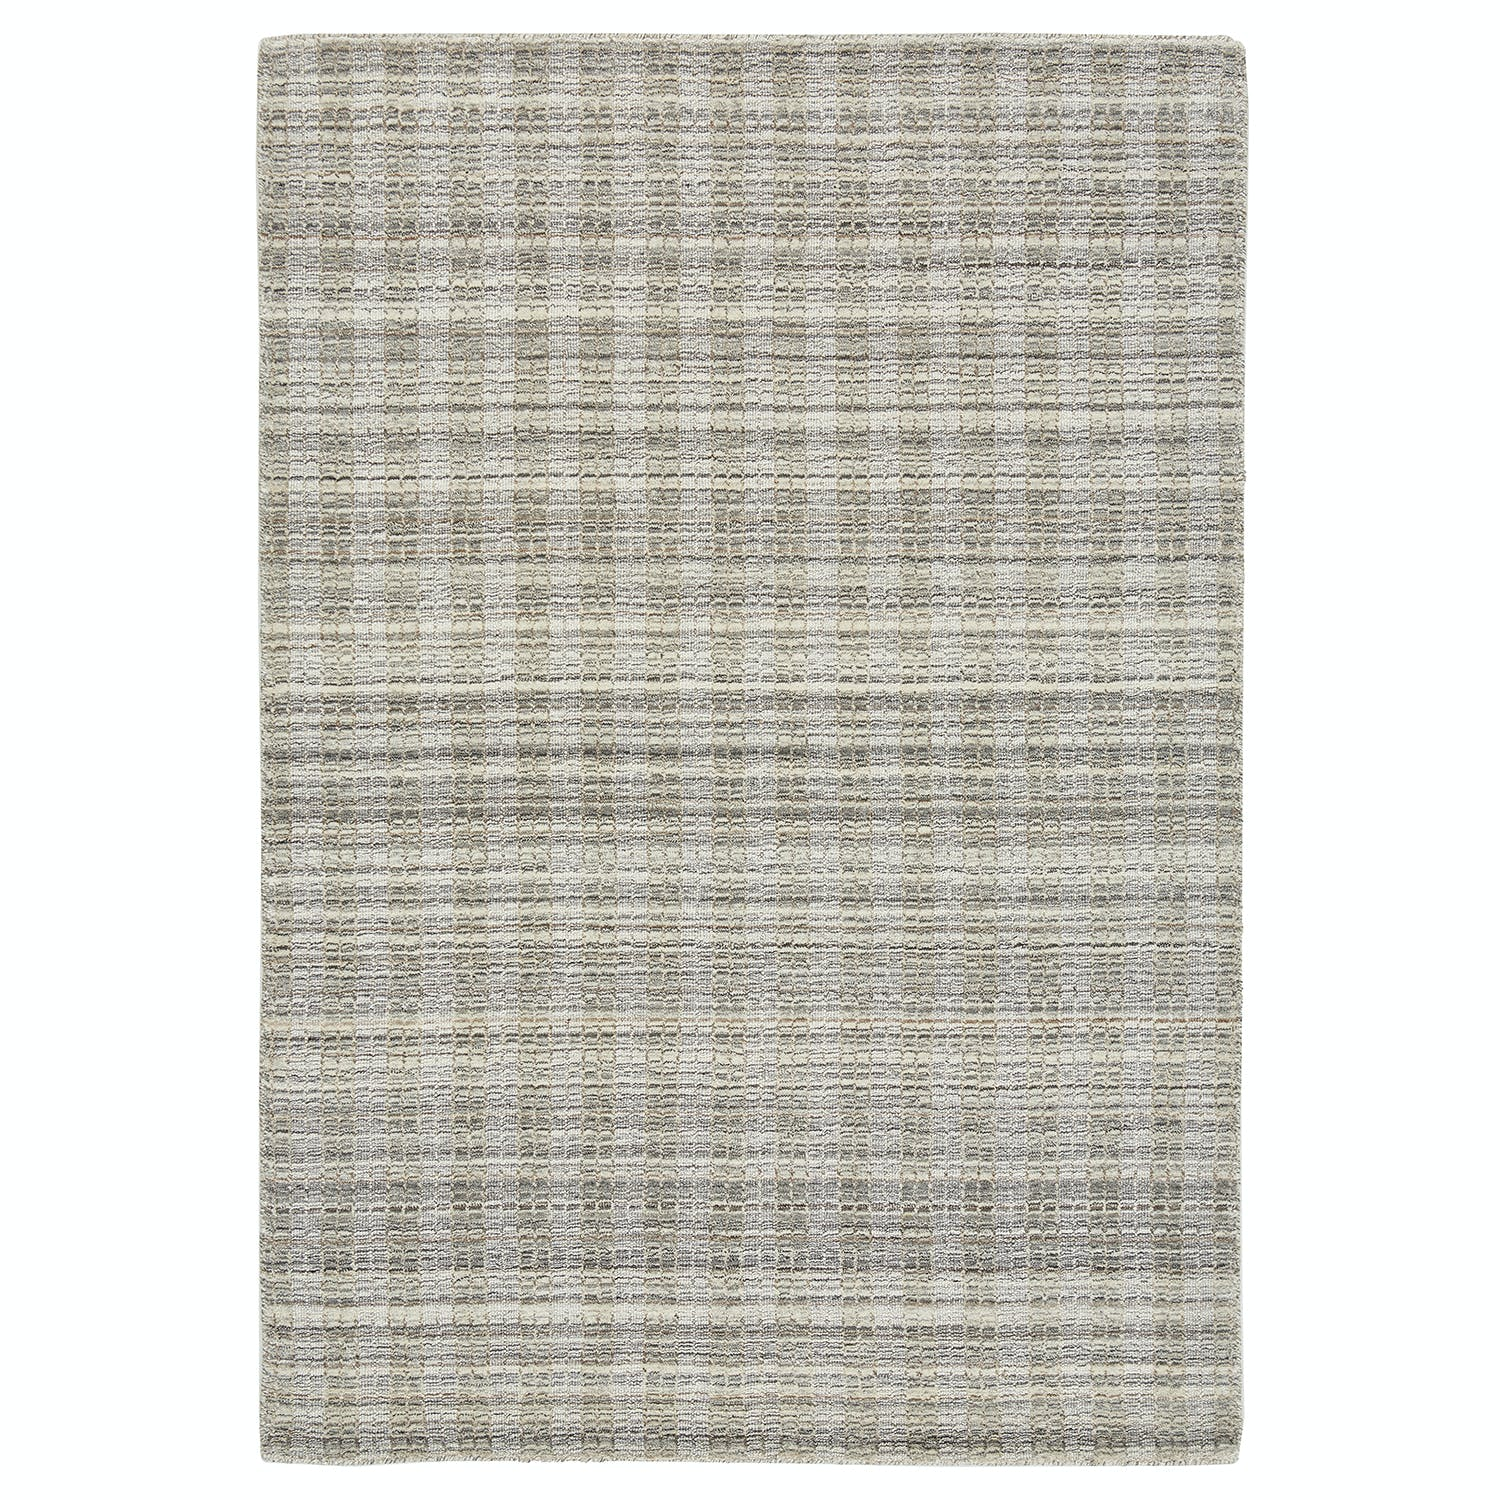 Contemporary Geometric Rug-4'x6'